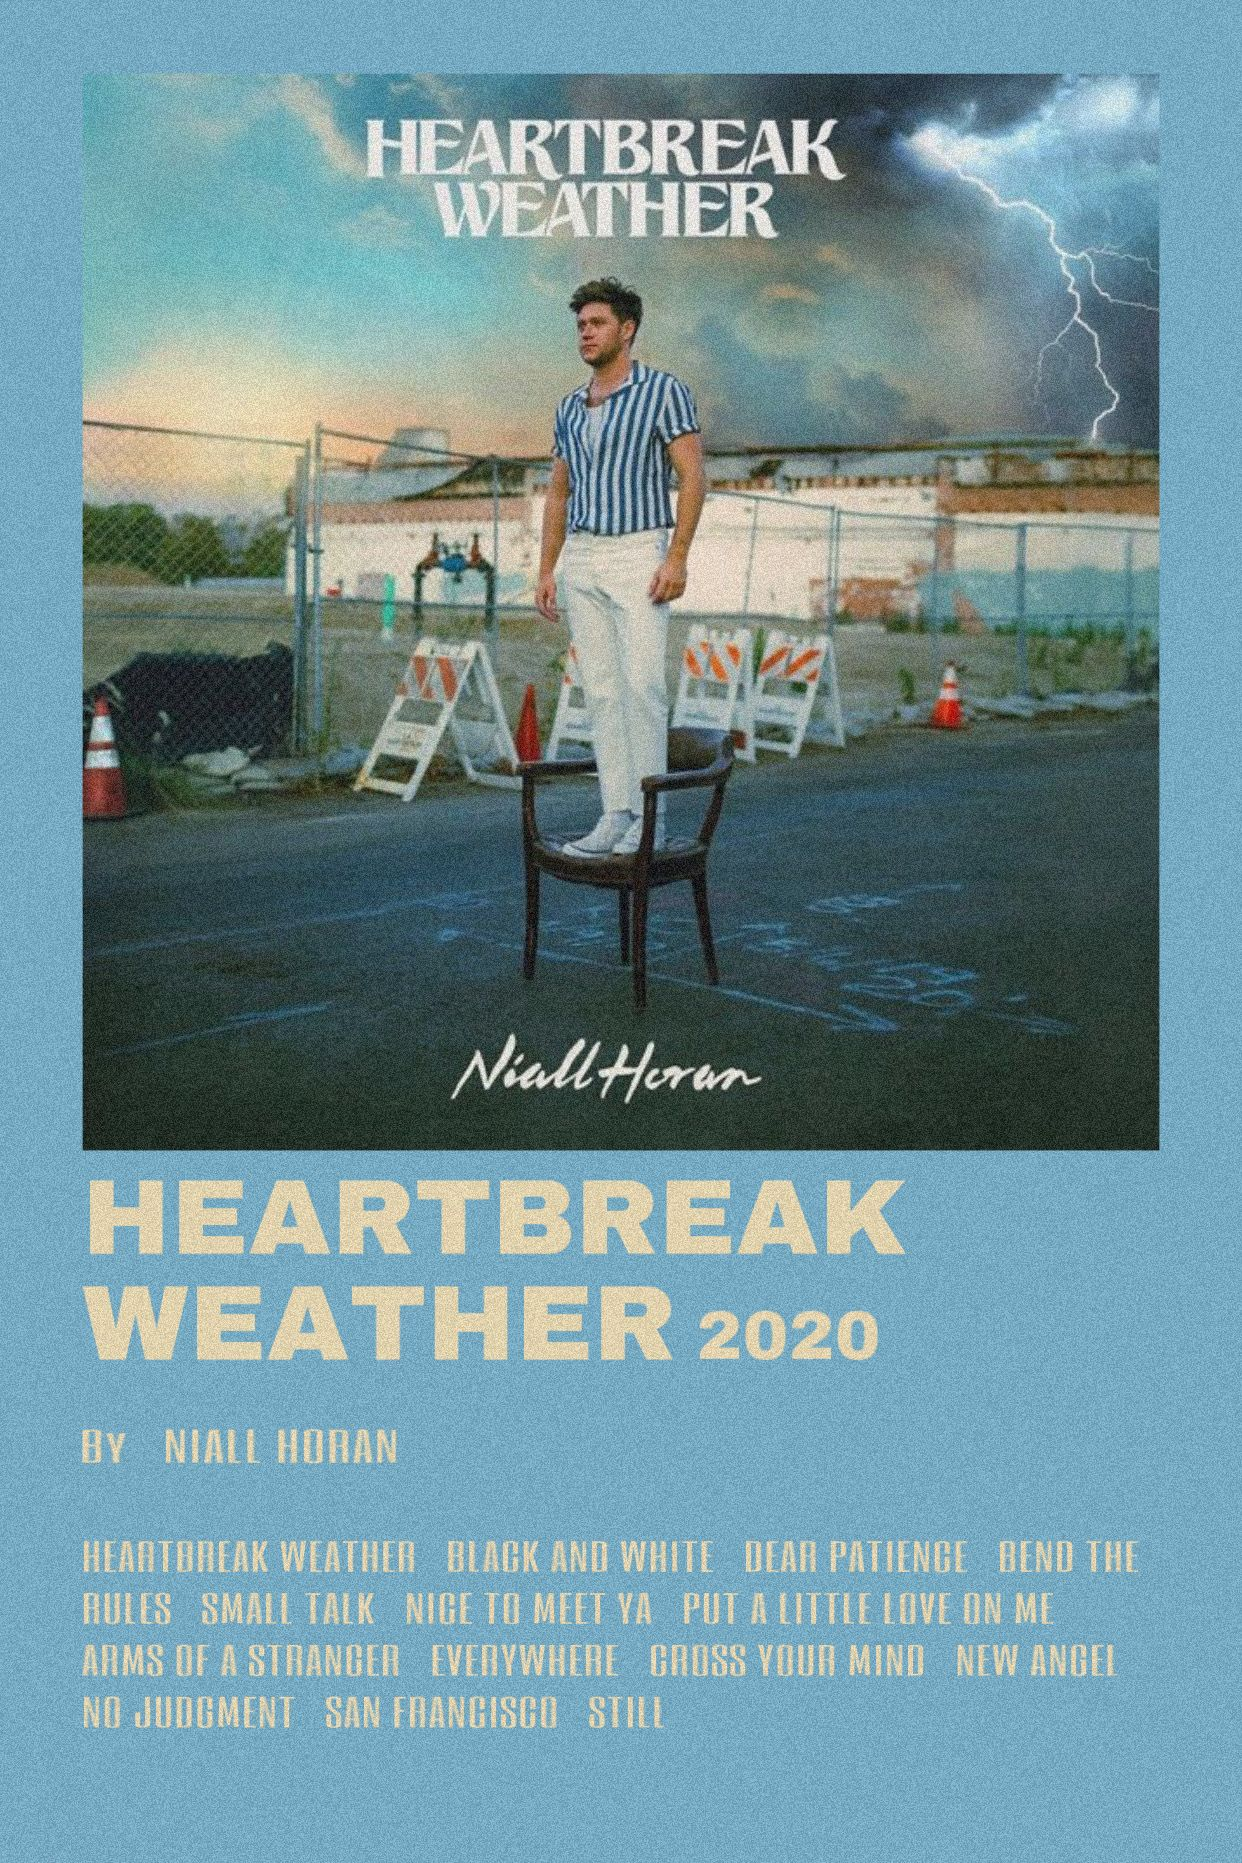 Heartbreak Weather By Scarlettbullivant In 2020 One Direction Photos Music Poster Movie Posters Minimalist